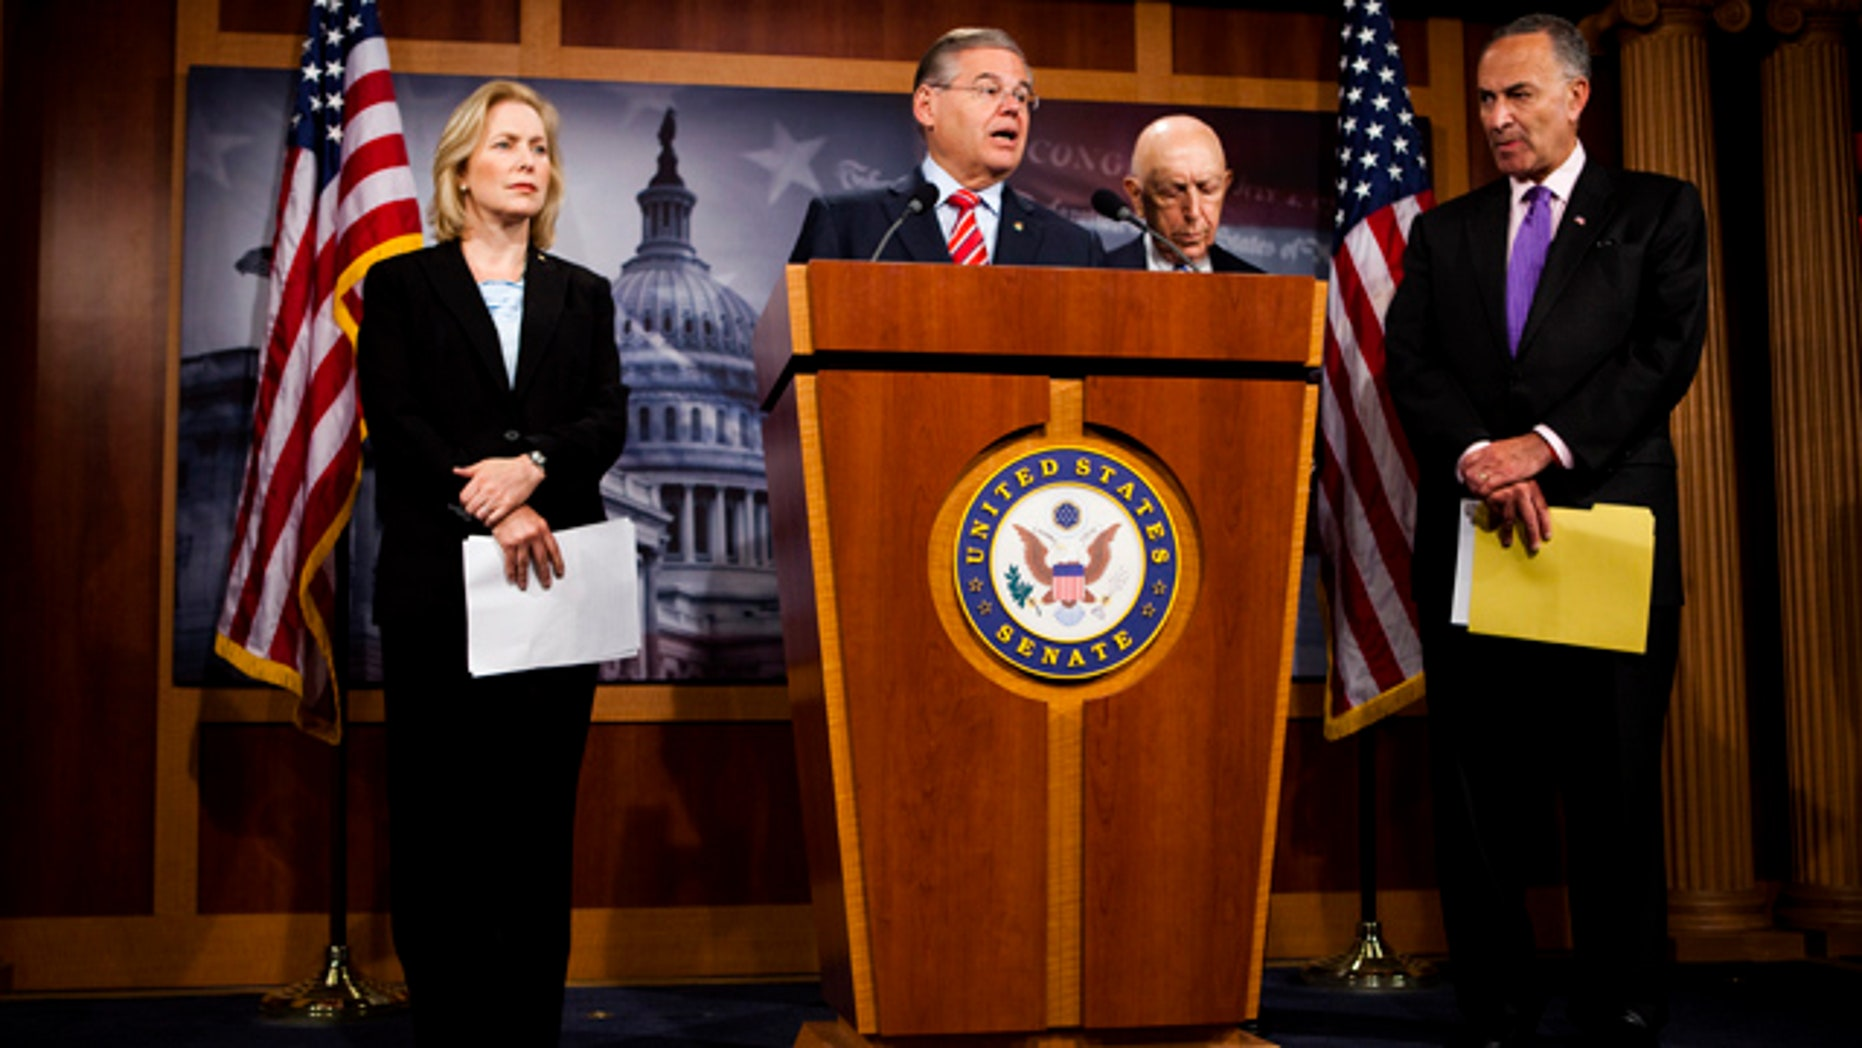 July 14: Senators from New York and New Jersey take part in a news conference to discuss asking the State Department to investigate whether oil giant BP played a role in winning release of the Lockerbie bomber.